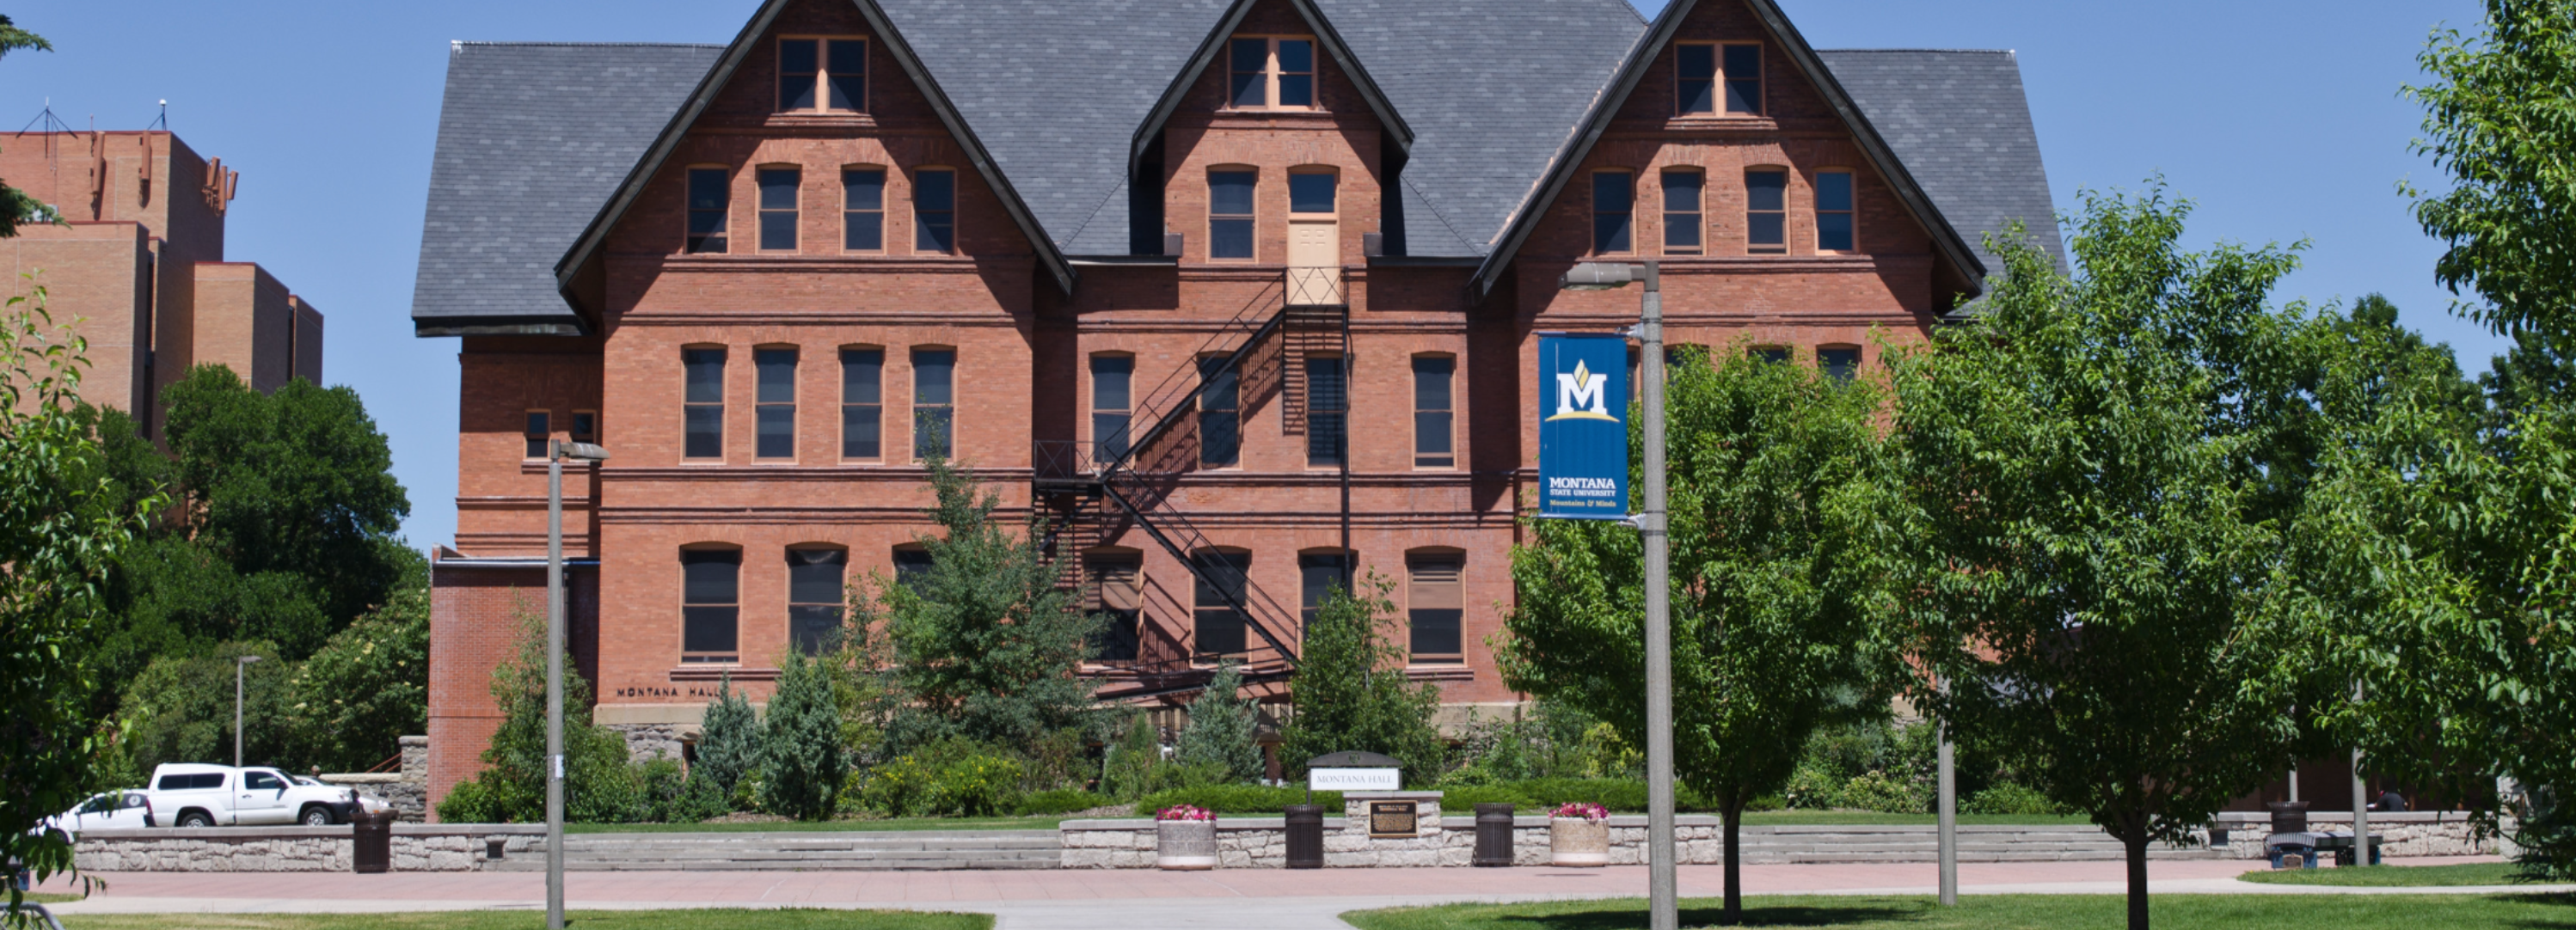 Off-Campus Housing Marketplace